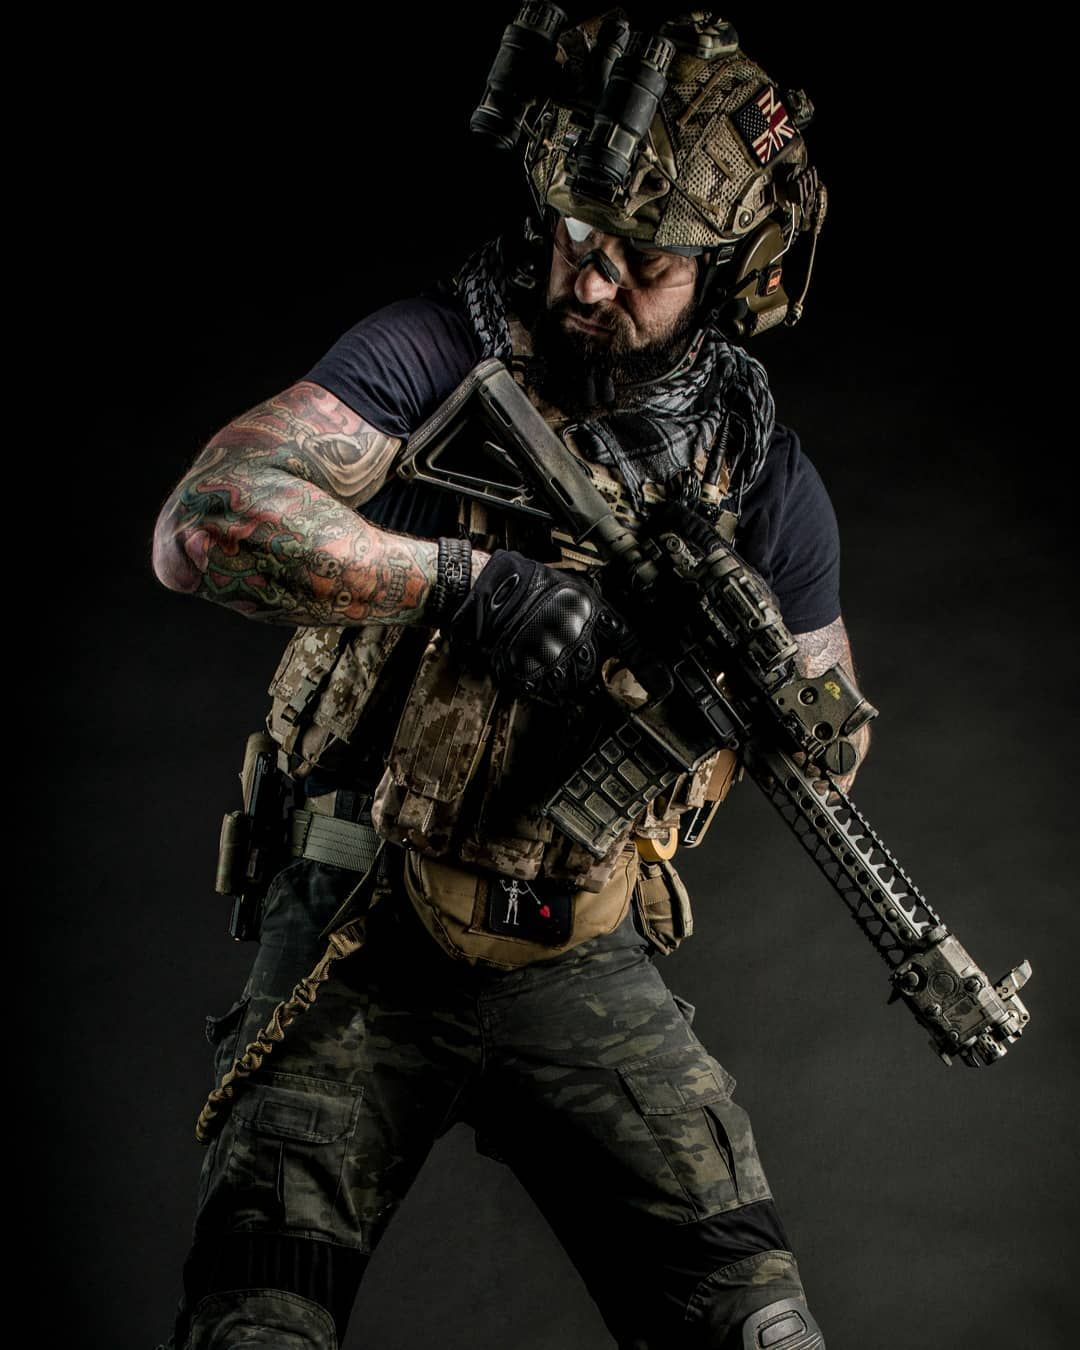 Airsoft player (With images) Military gear, Combat gear